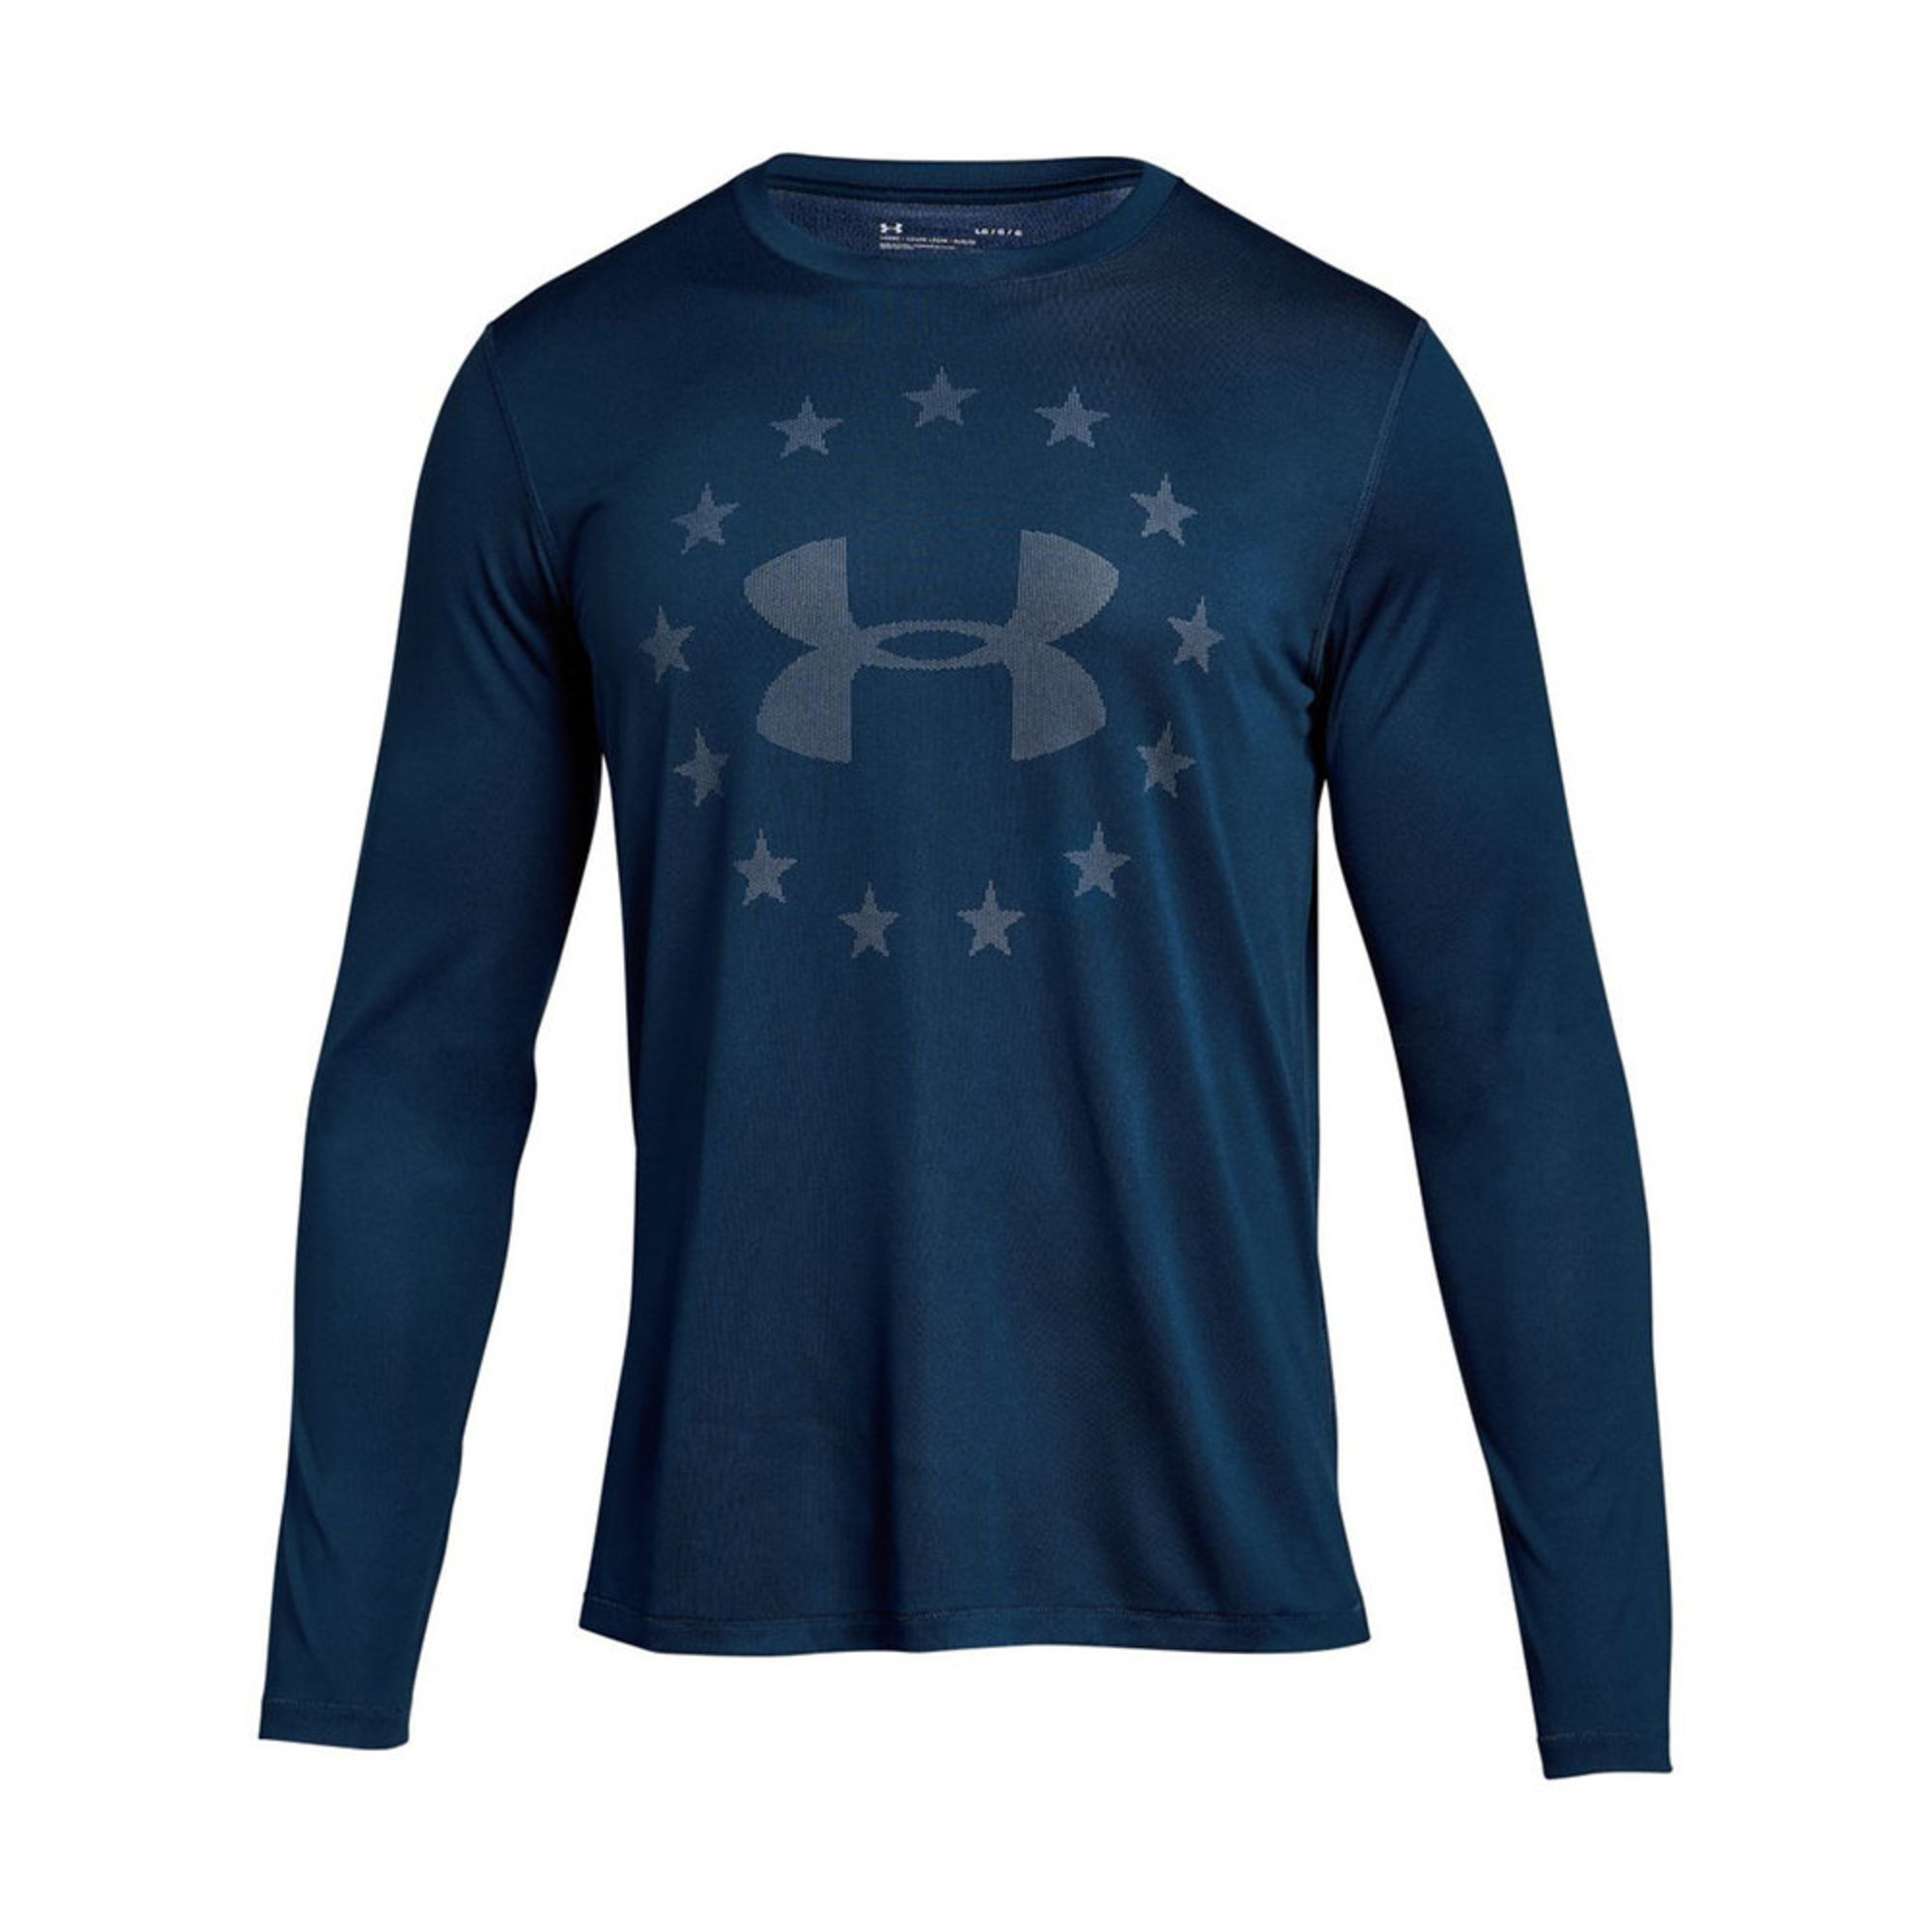 33344318e1e67 Under Armour Men s Freedom Logo Jacquard Long Sleeve Tee